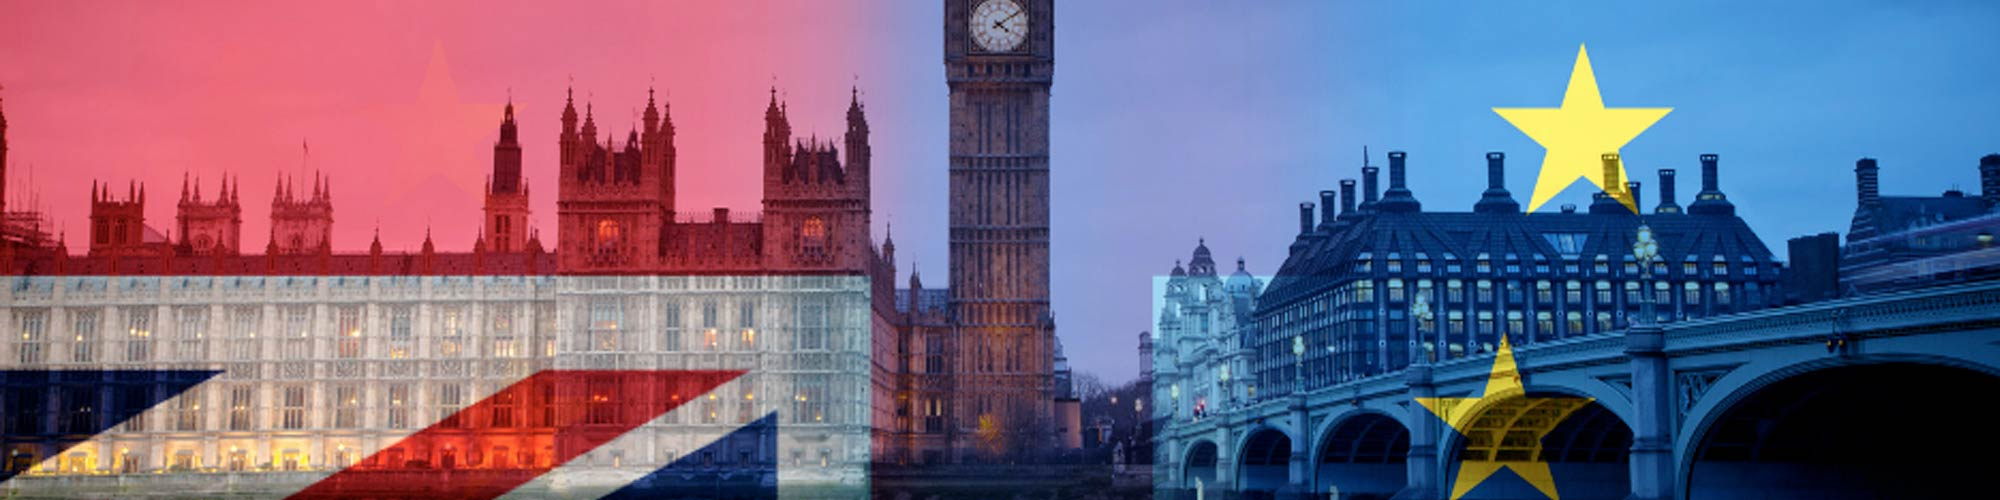 Photo of London cityscape, with Big Ben and Houses of Parliament set against Union Jack and European Union flags